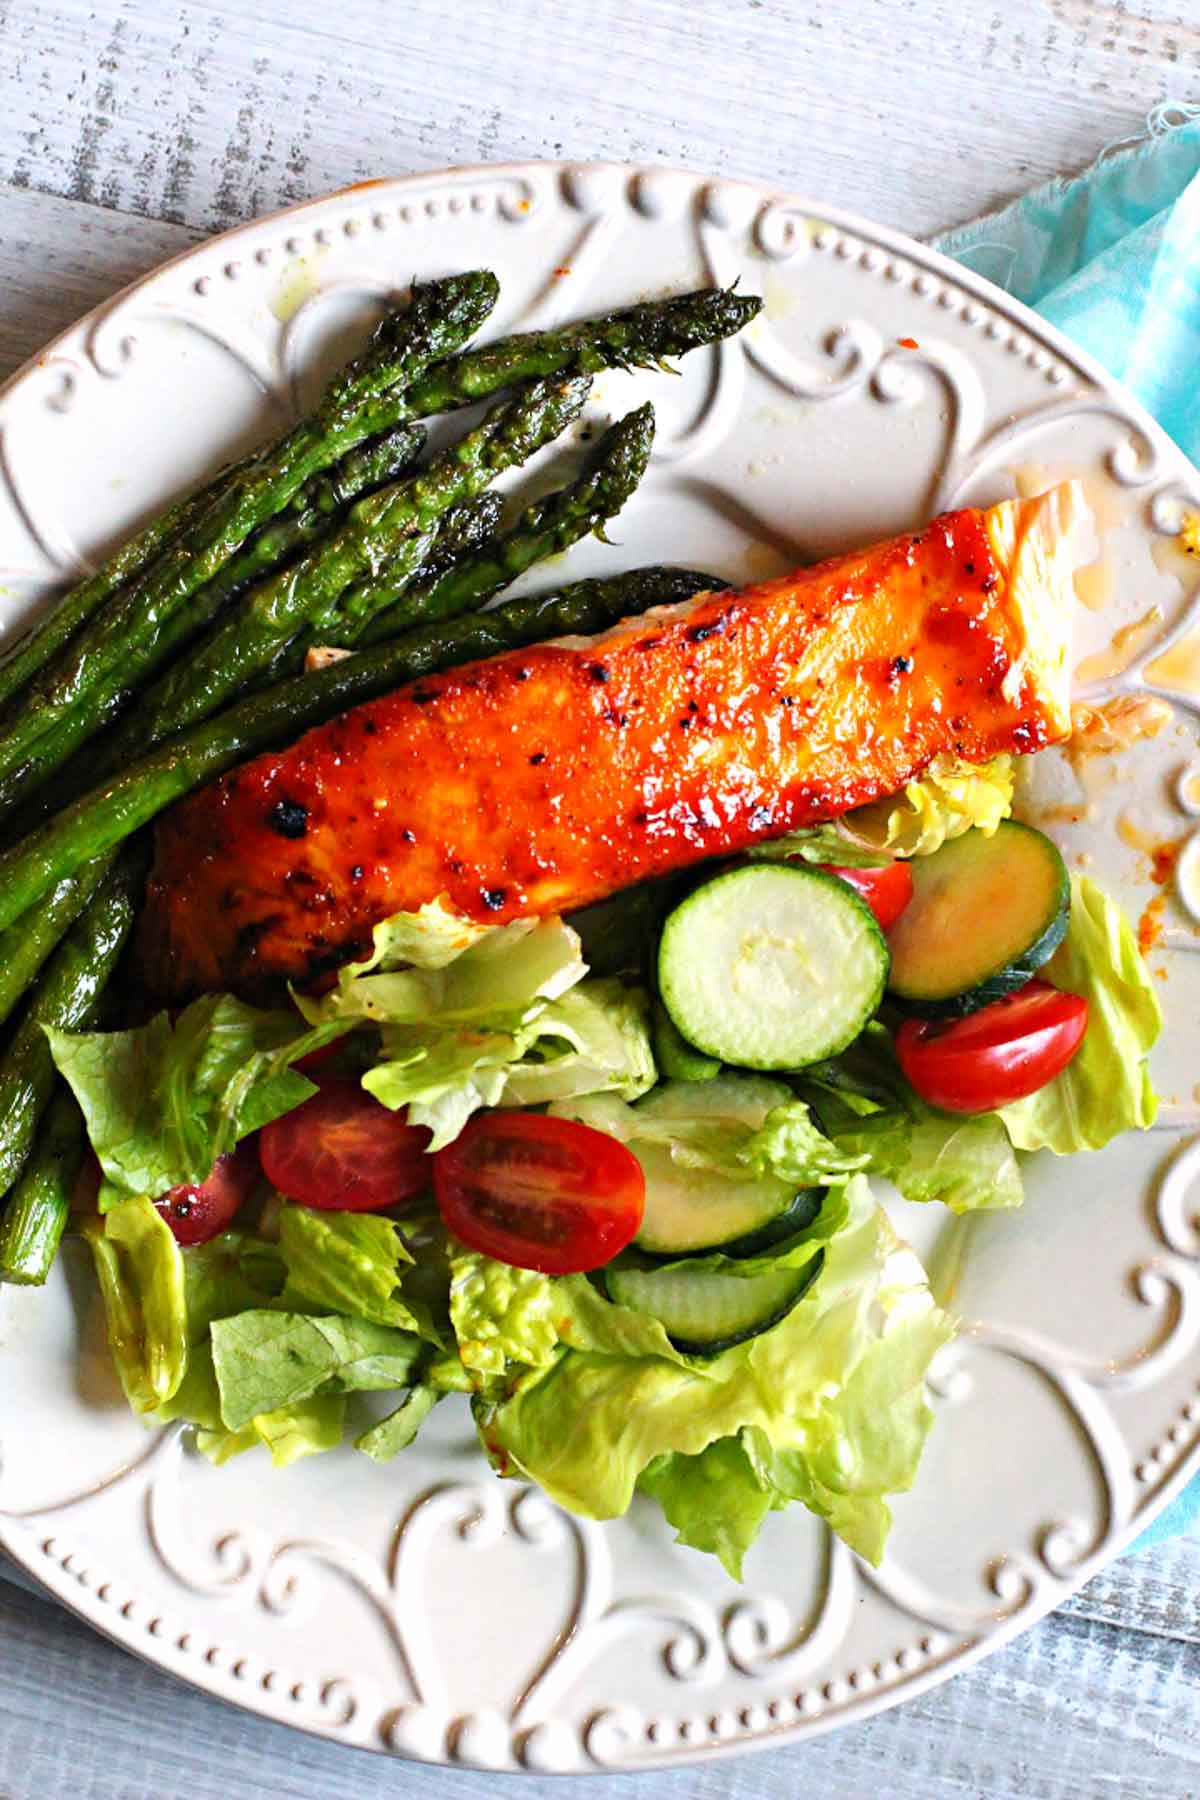 Peach Jam Glazed Salmon with a tossed green salad and sauteed asparagus.